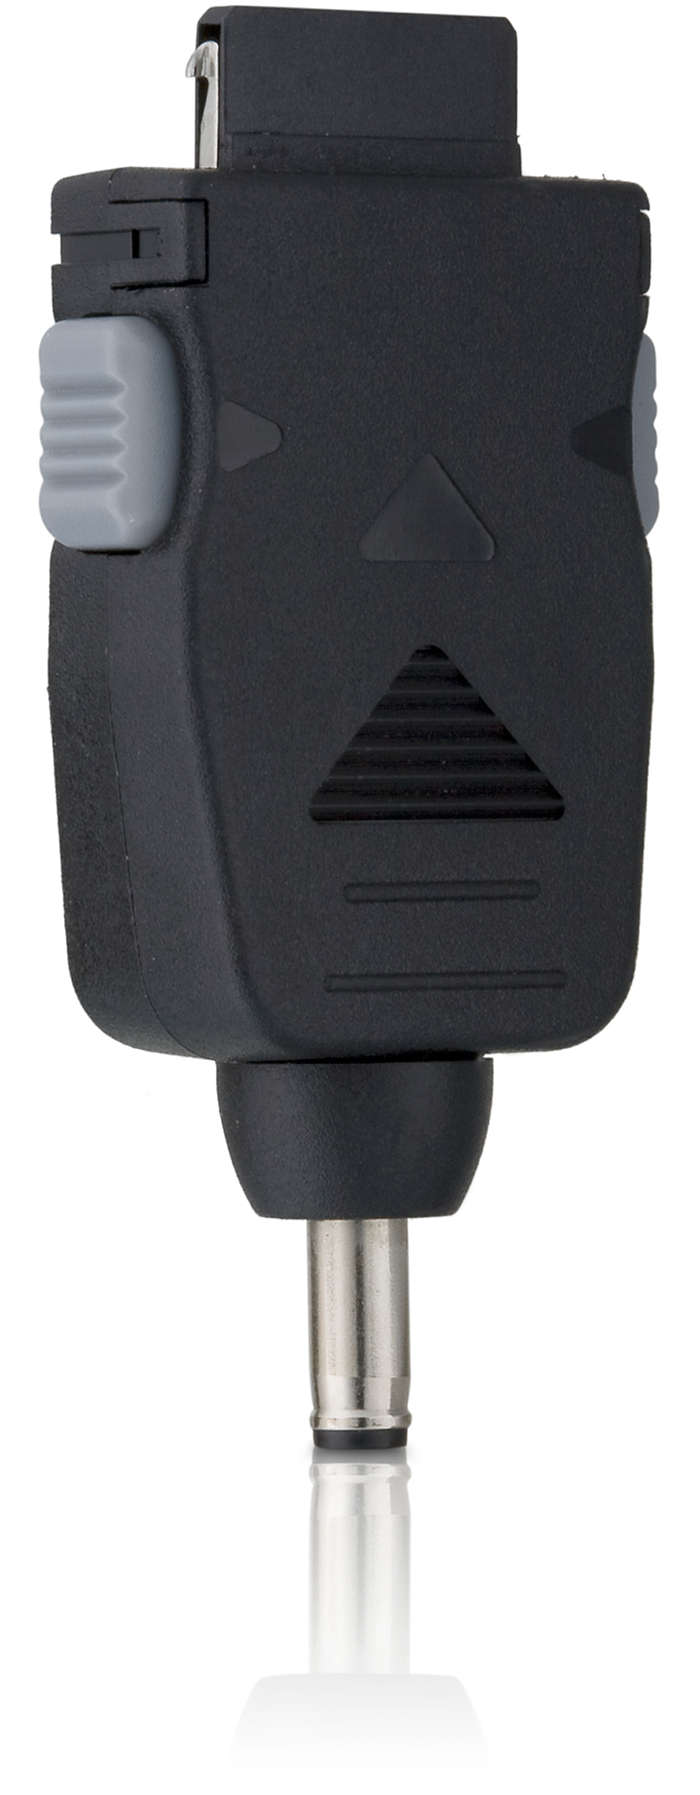 Connector tip for HP IPAQ PDAs